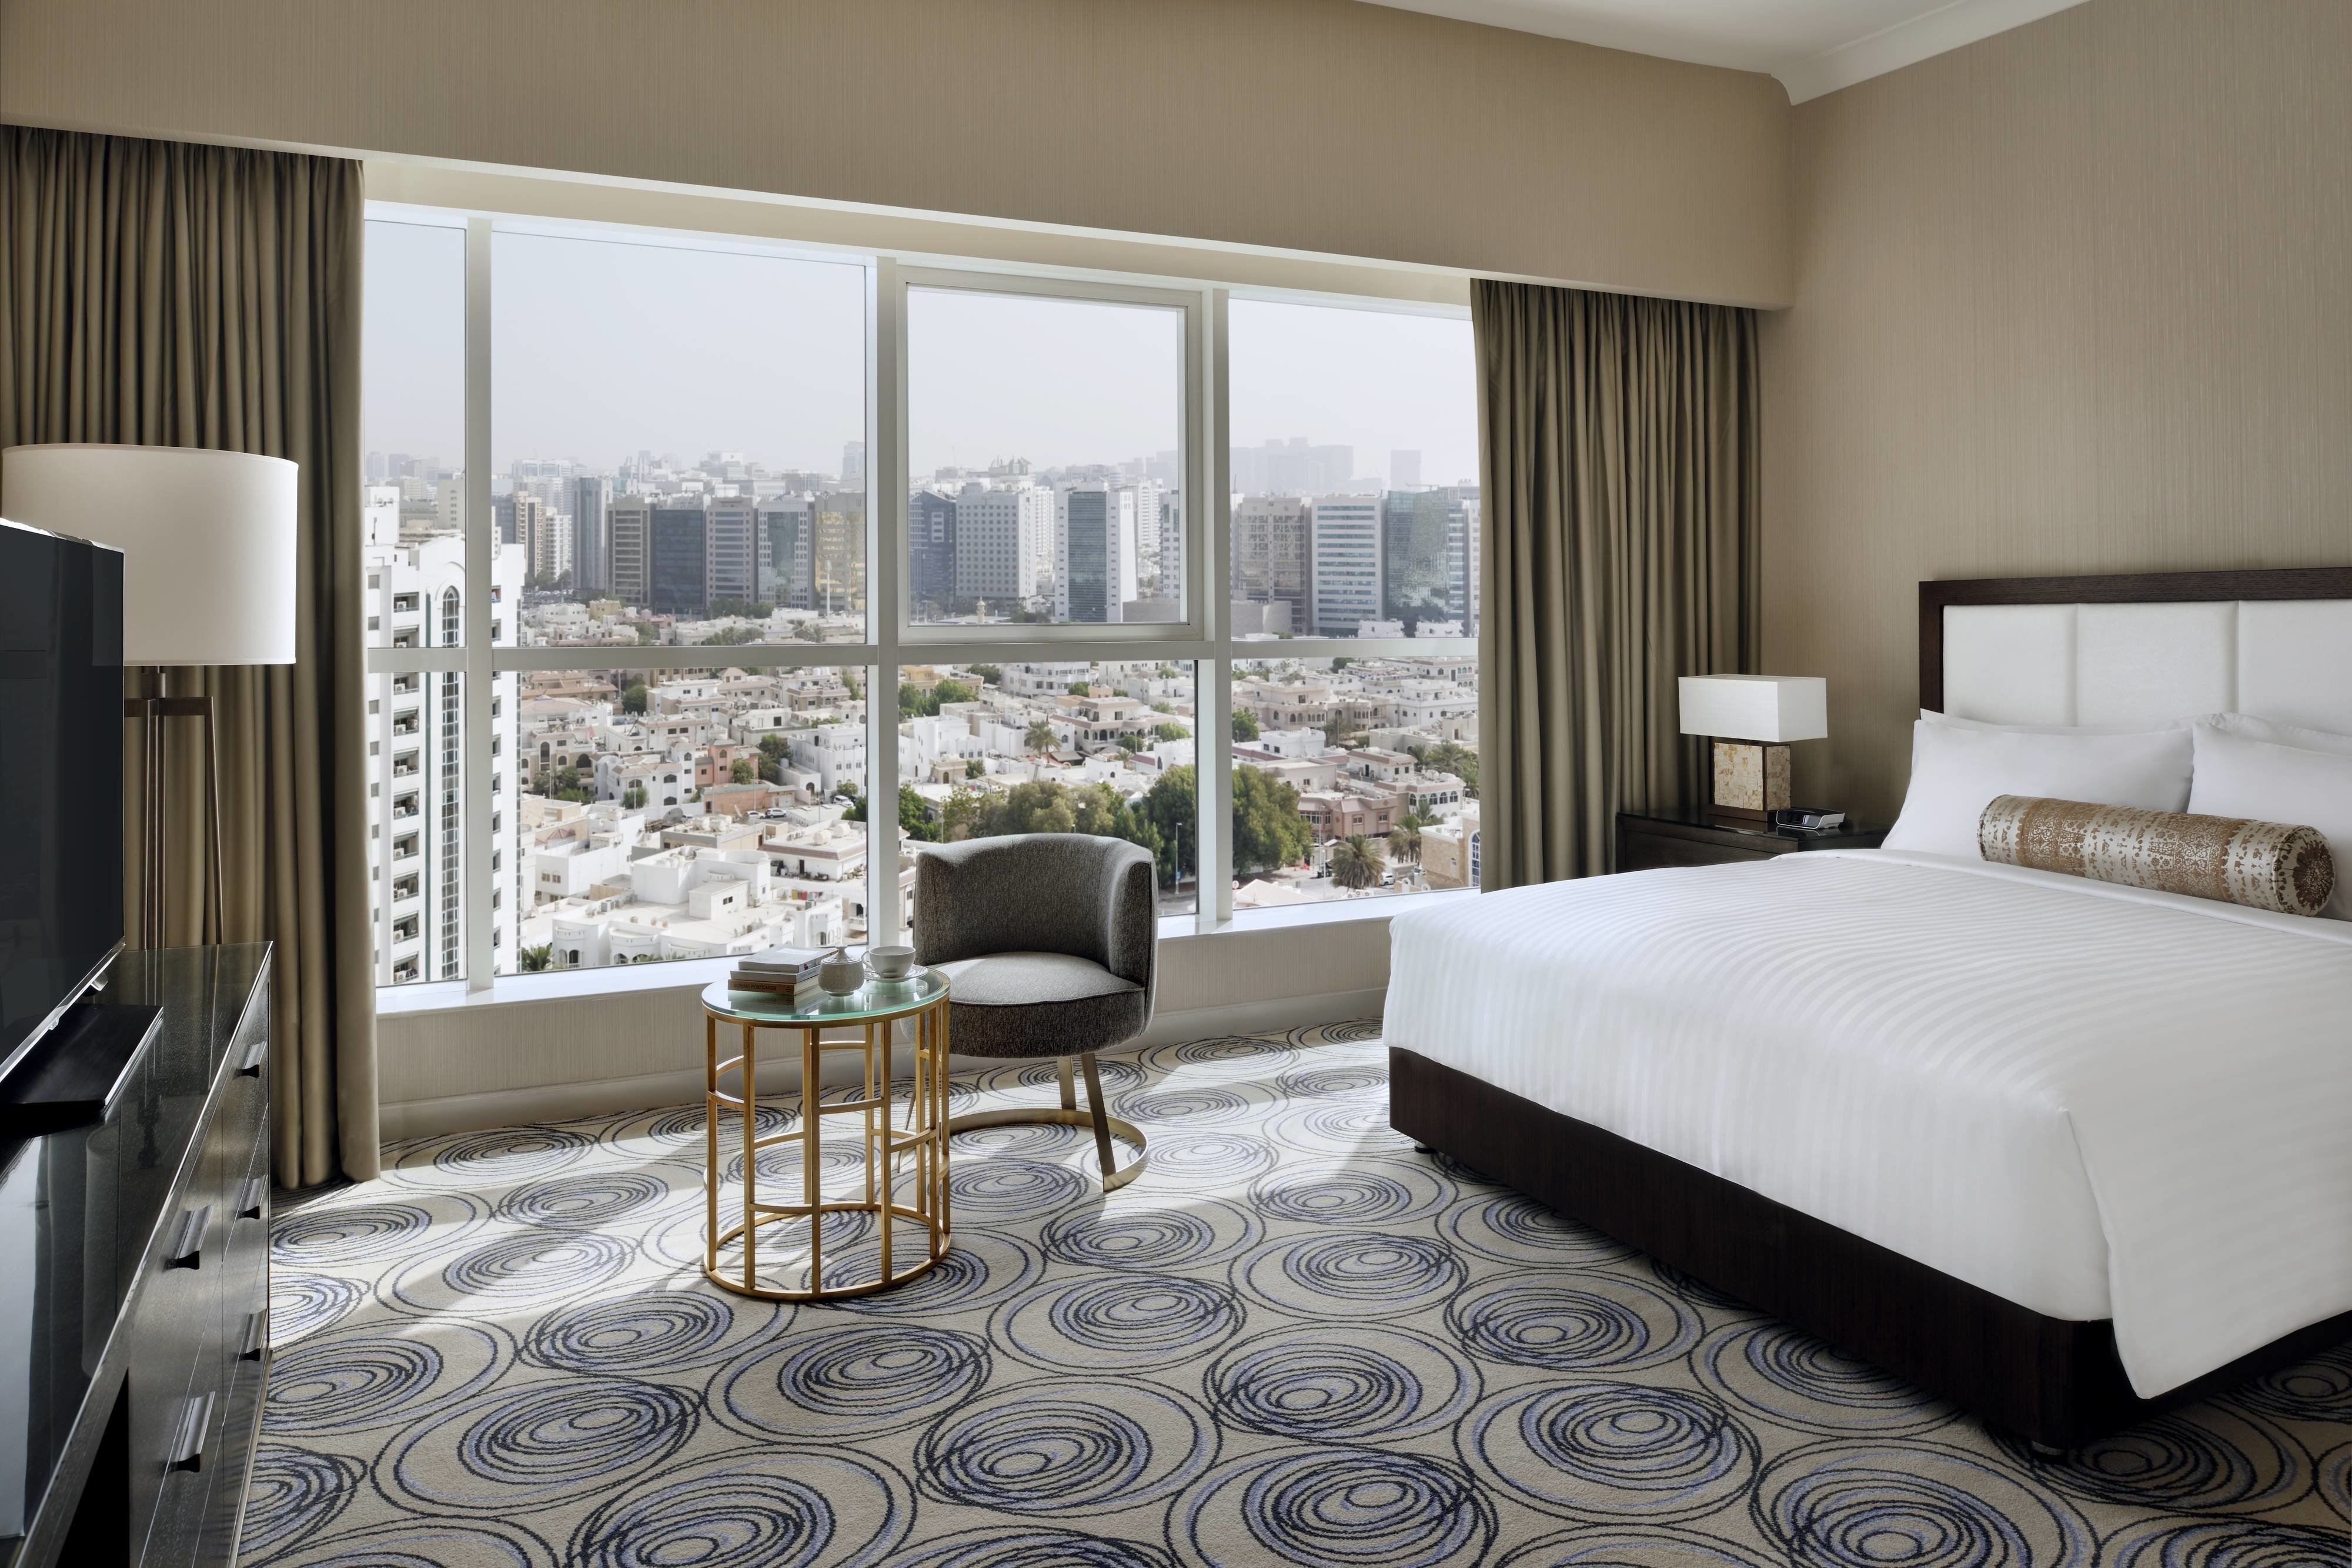 Best Hotel Rooms Amenities Marriott Executive Apartments With Pictures Original 1024 x 768